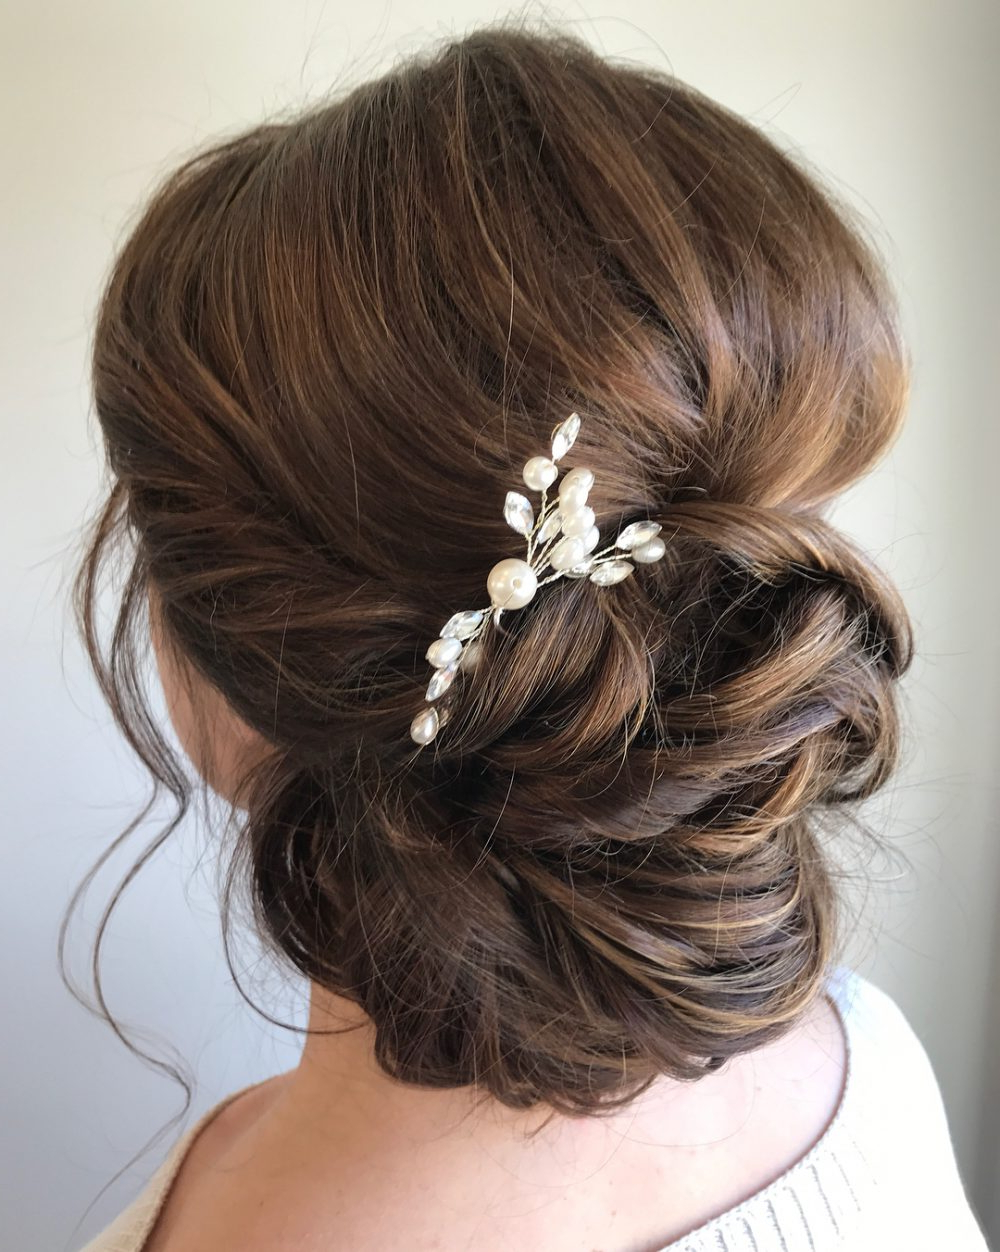 33 Breathtaking Loose Updos That Are Trendy For 2019 Within 2018 Tousled Asymmetrical Updo Wedding Hairstyles (Gallery 18 of 20)